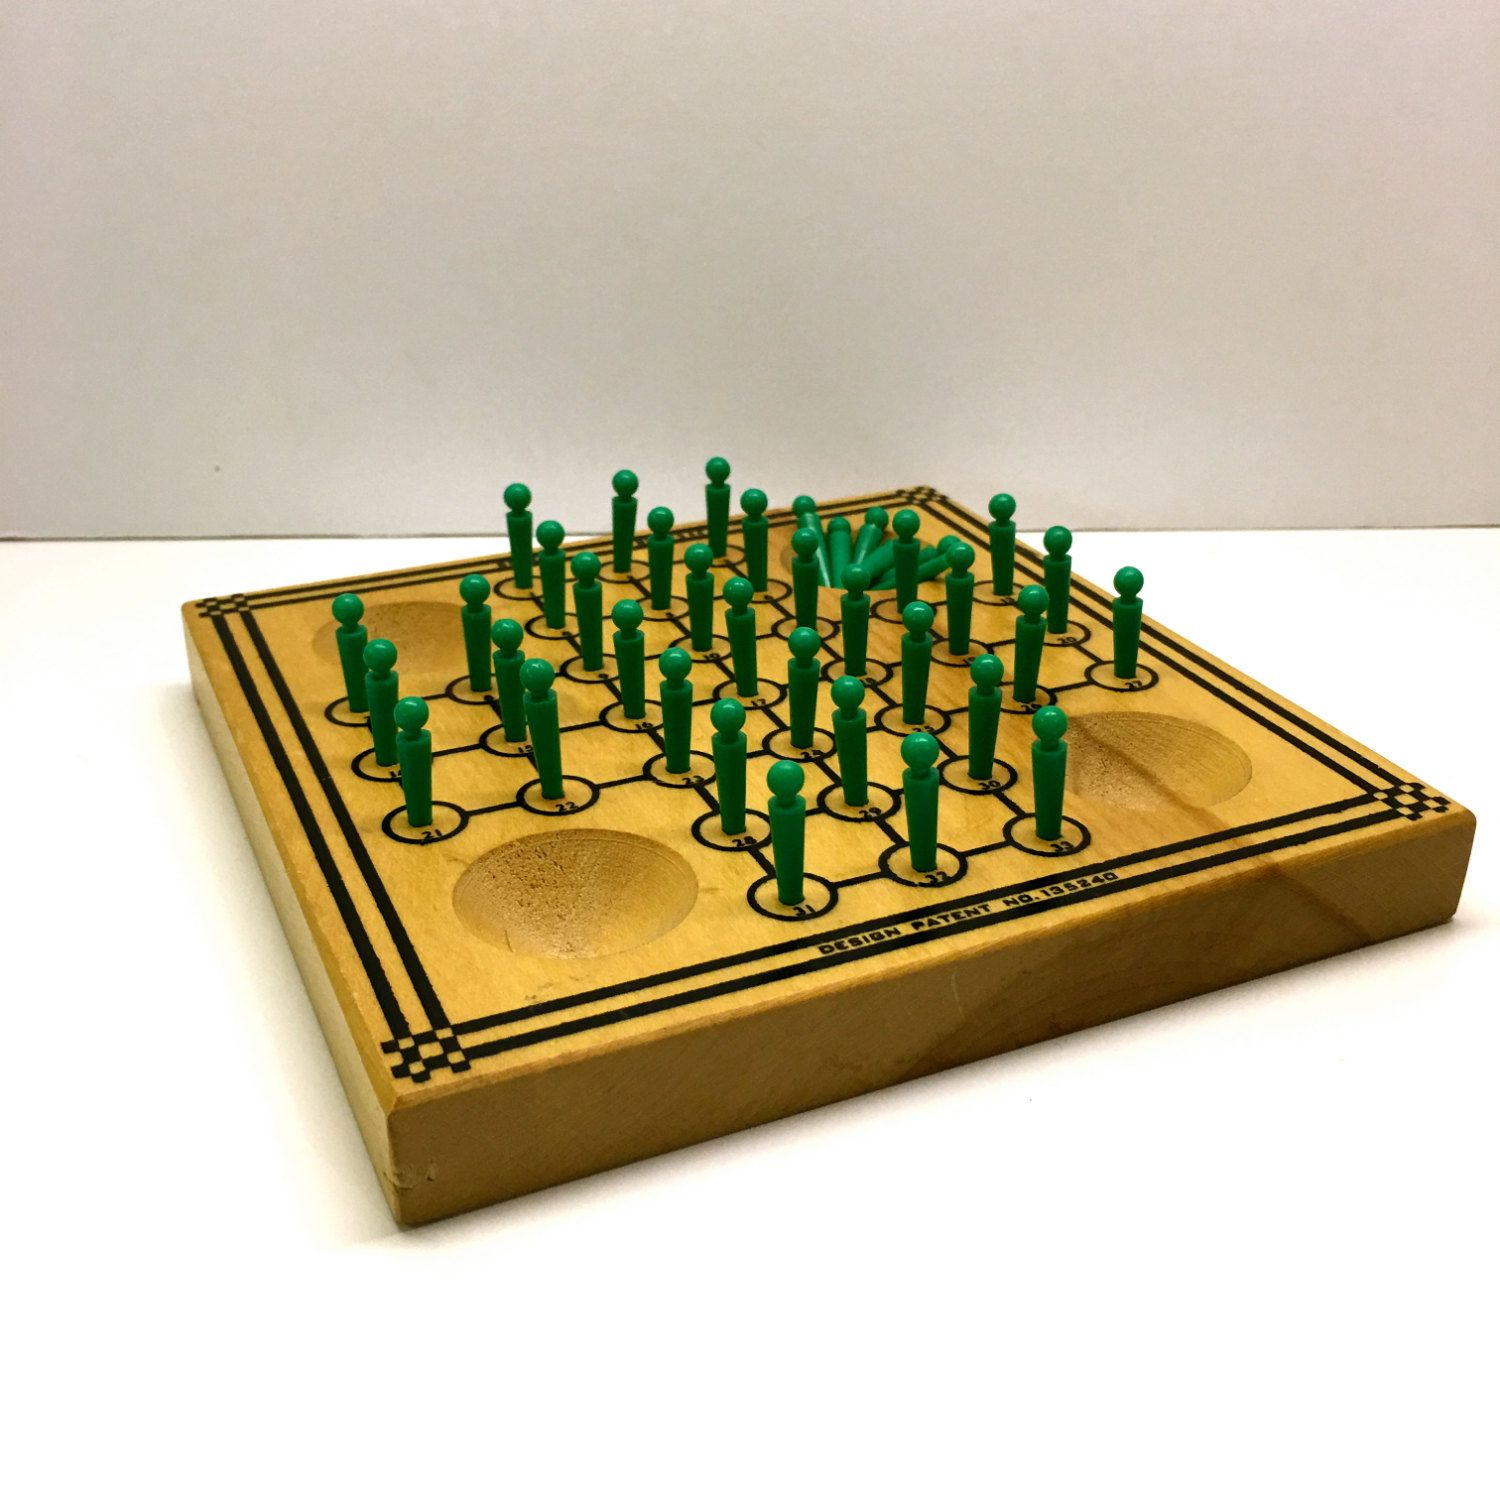 Drueke Solitaire Game With Pegs Patent no 135240 by